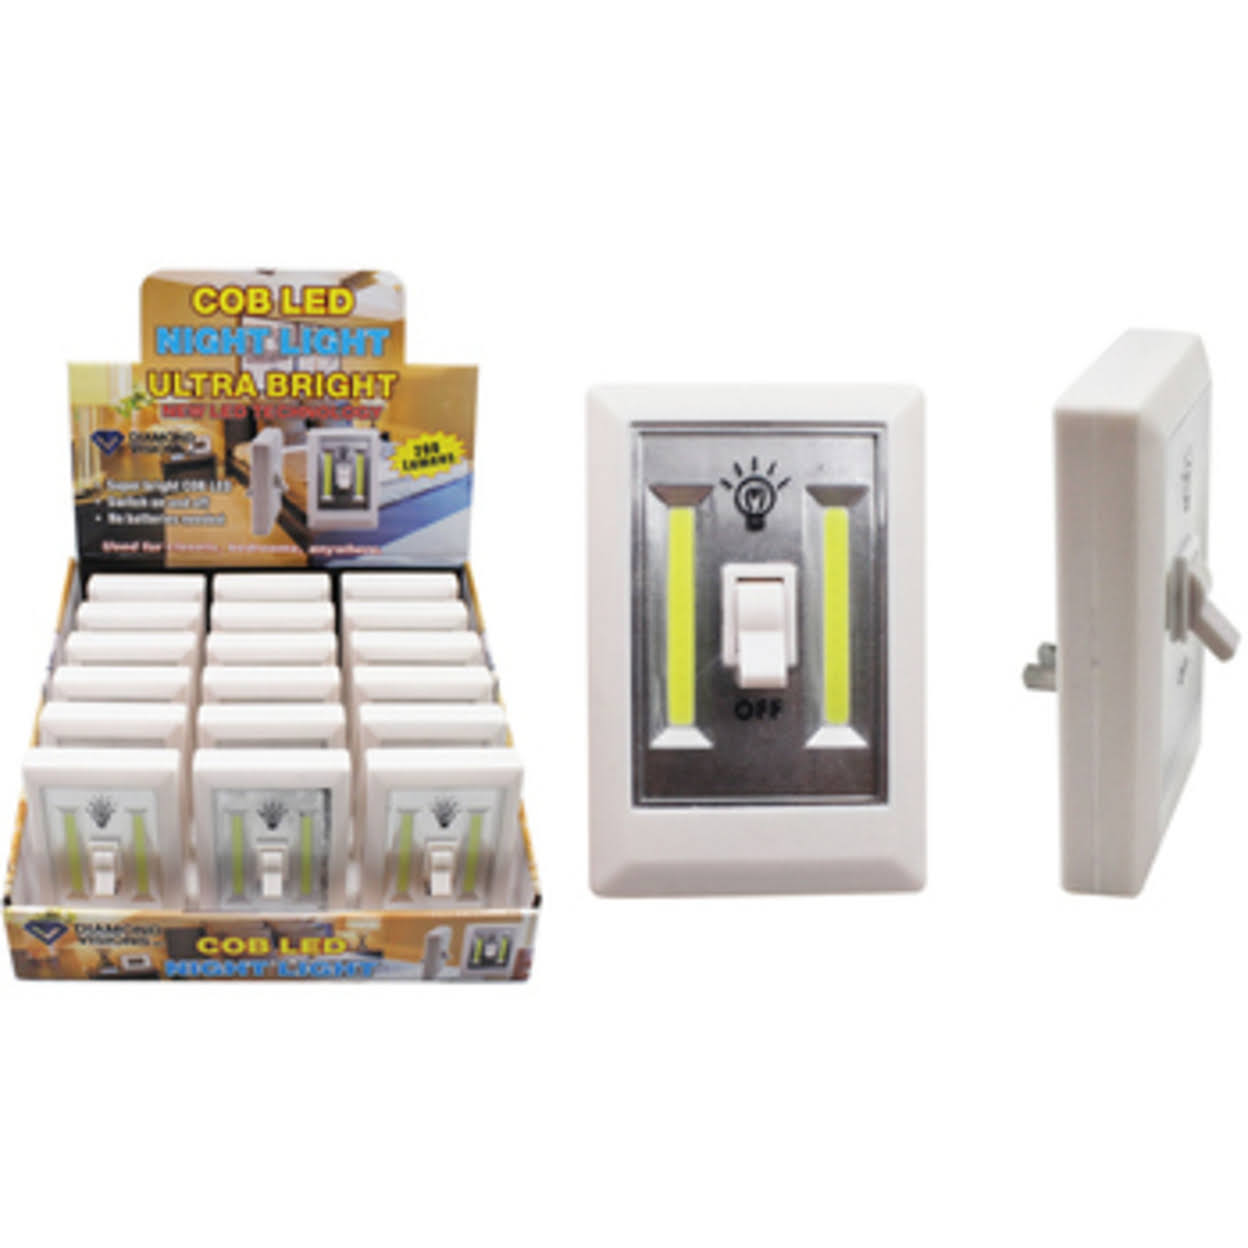 Diamond Visions COB LED Plug In Light Switch - White, 200 Lumens